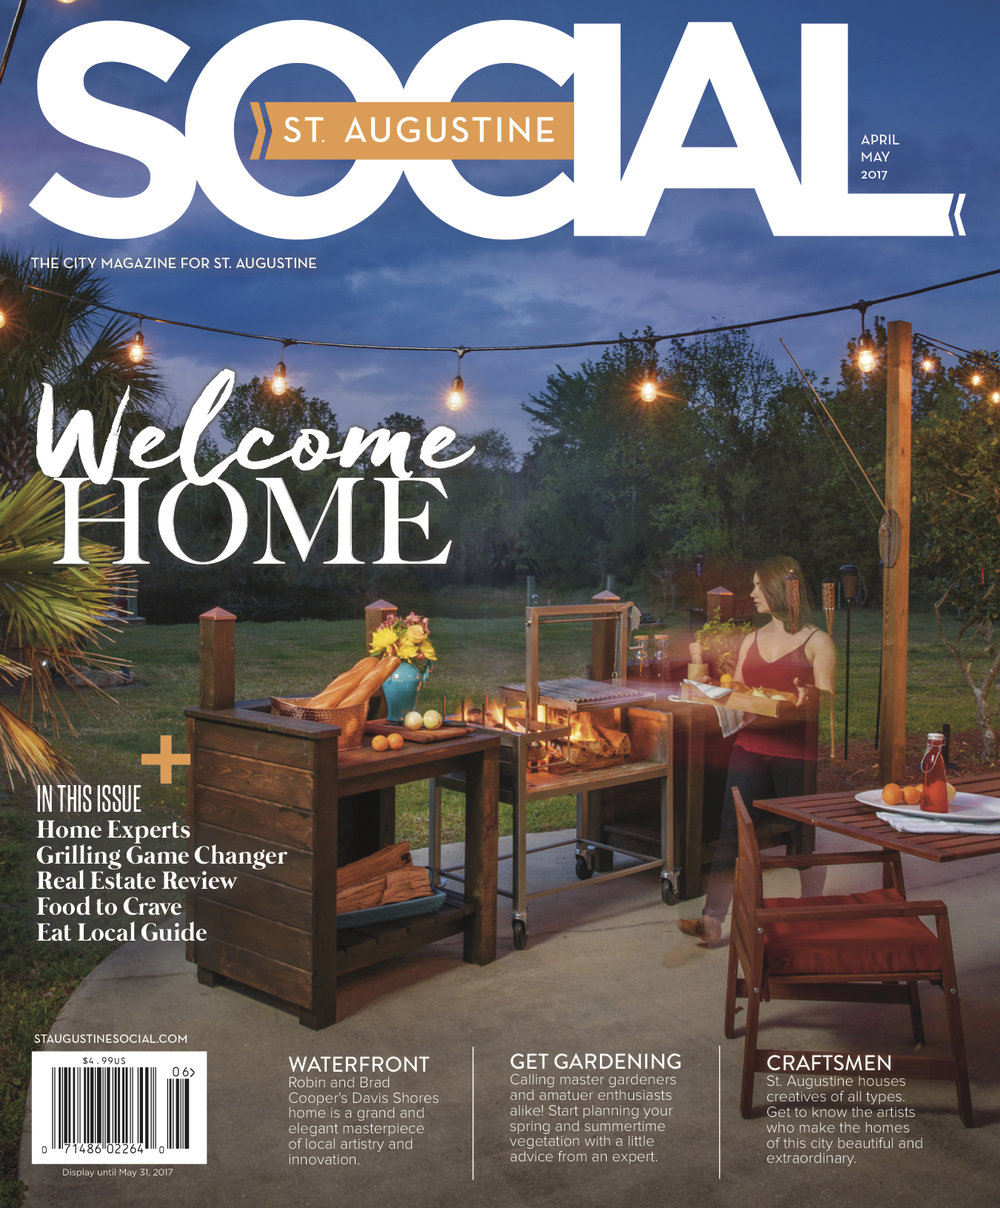 Cover - St. Augustine Social Apr: May 2017.jpg